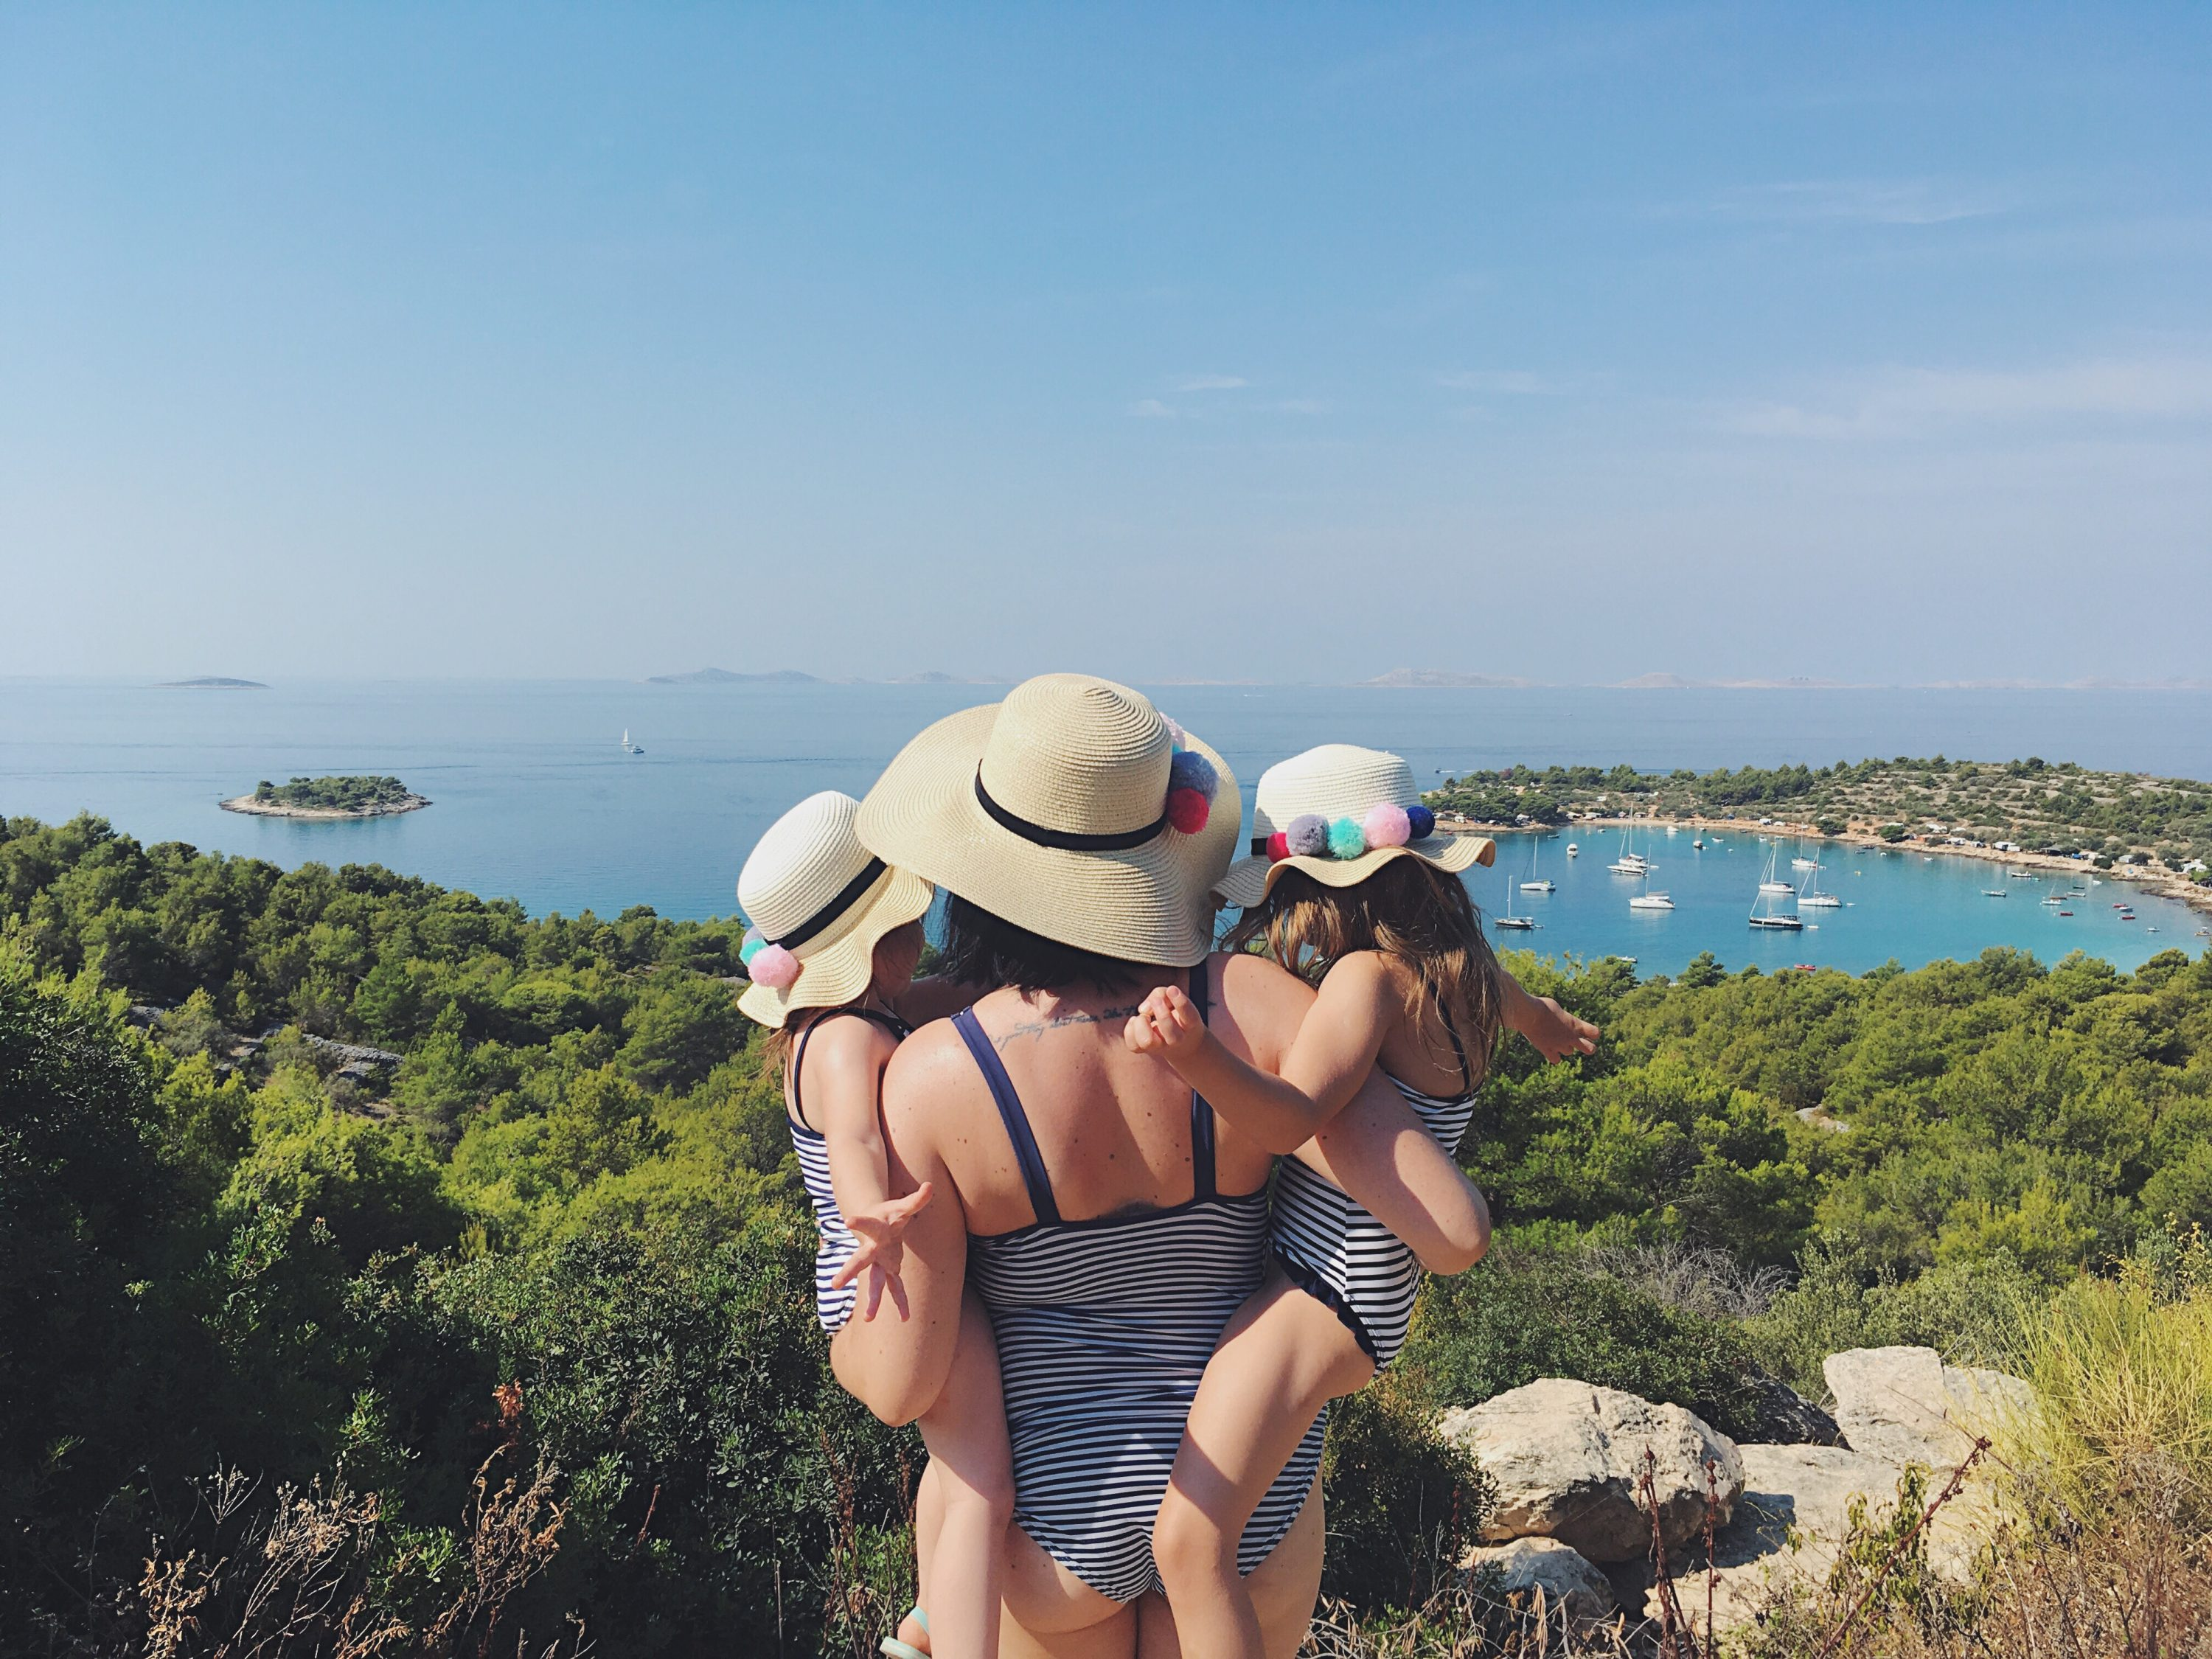 Murter Island Croatia full of life free spirit nature mom blogger stylish hm h&m jezera tisno happiness mama blogerica traveling kids lifestyle sea adriatic jadransko more more less ines blogger travel boat summer